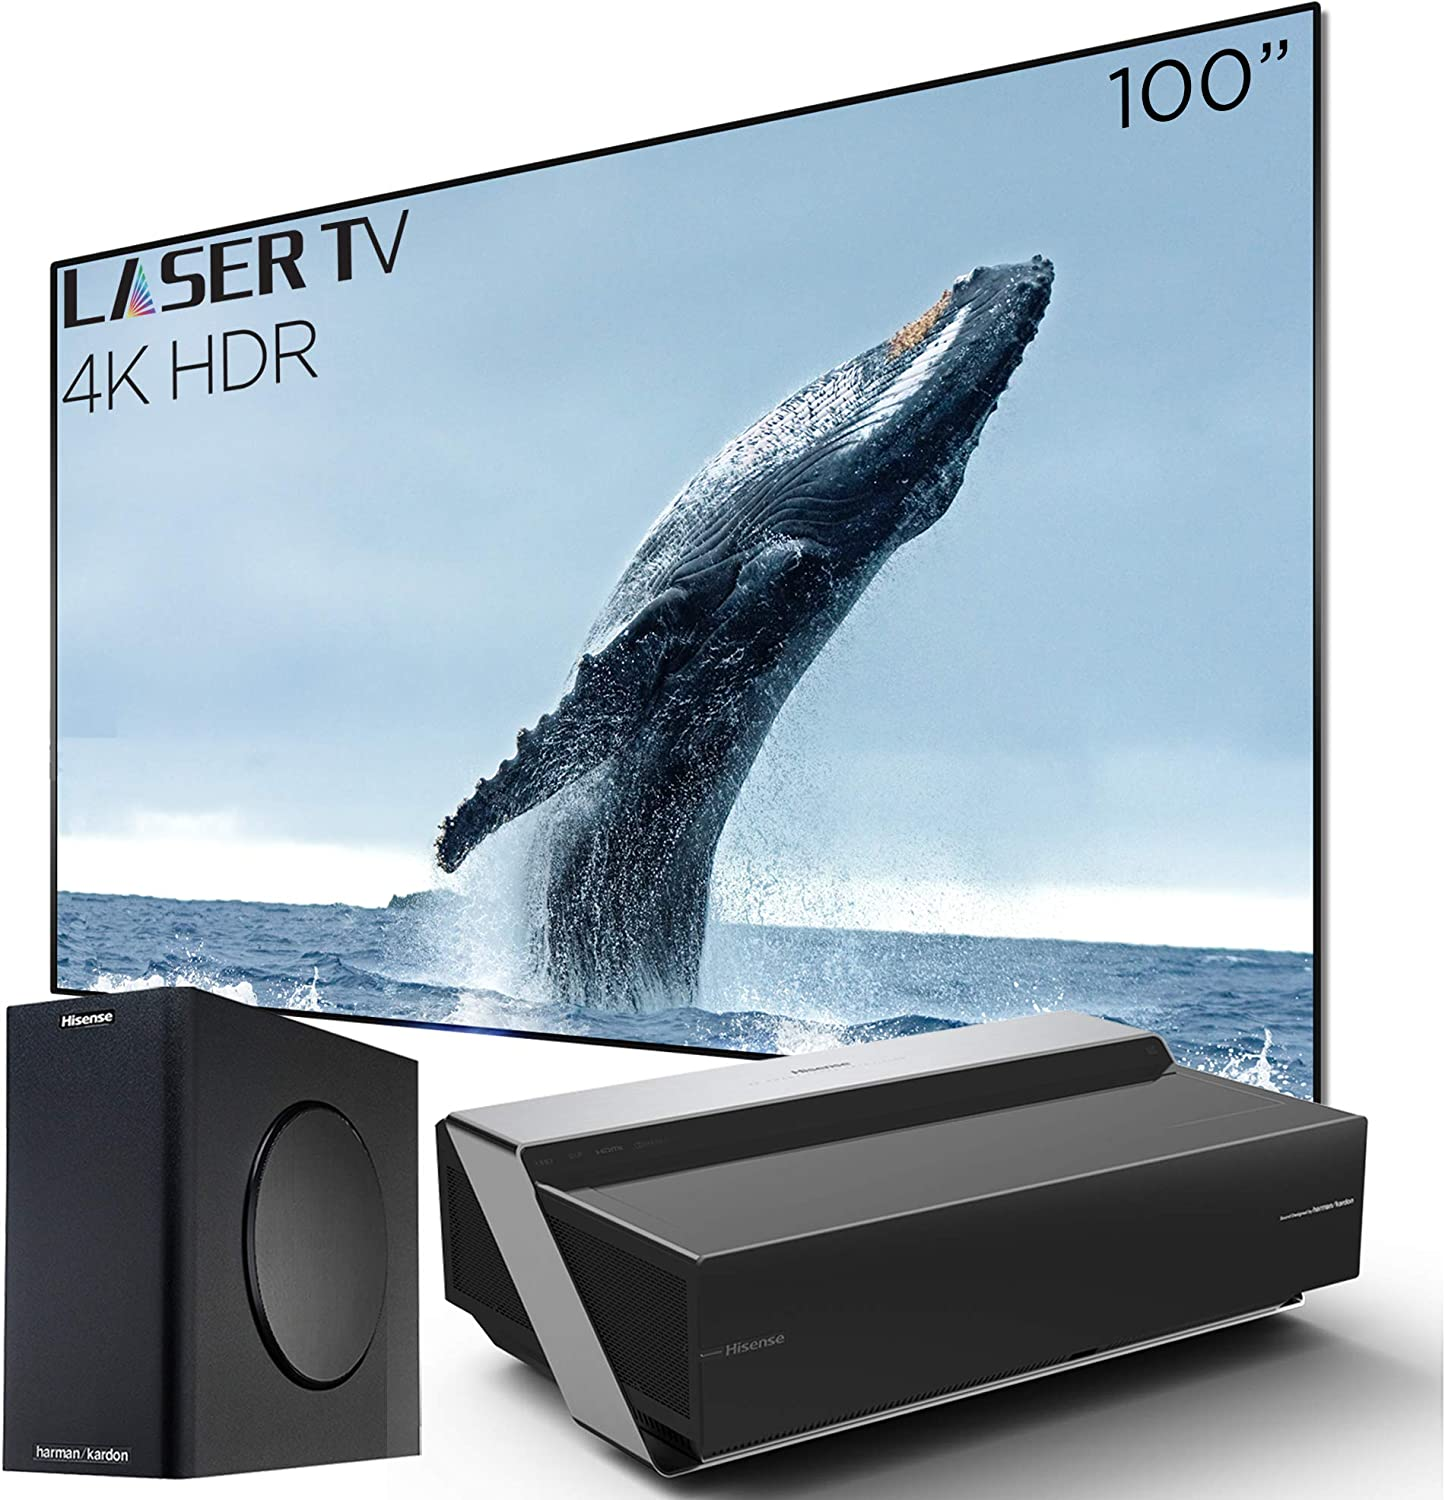 Hisense 100L10E Ultra Short Throw 4K UHD Smart HDR Home Theater Projector Laser TV with 100 Ambient Light Rejection Screen, Harman Kardon Sound ...